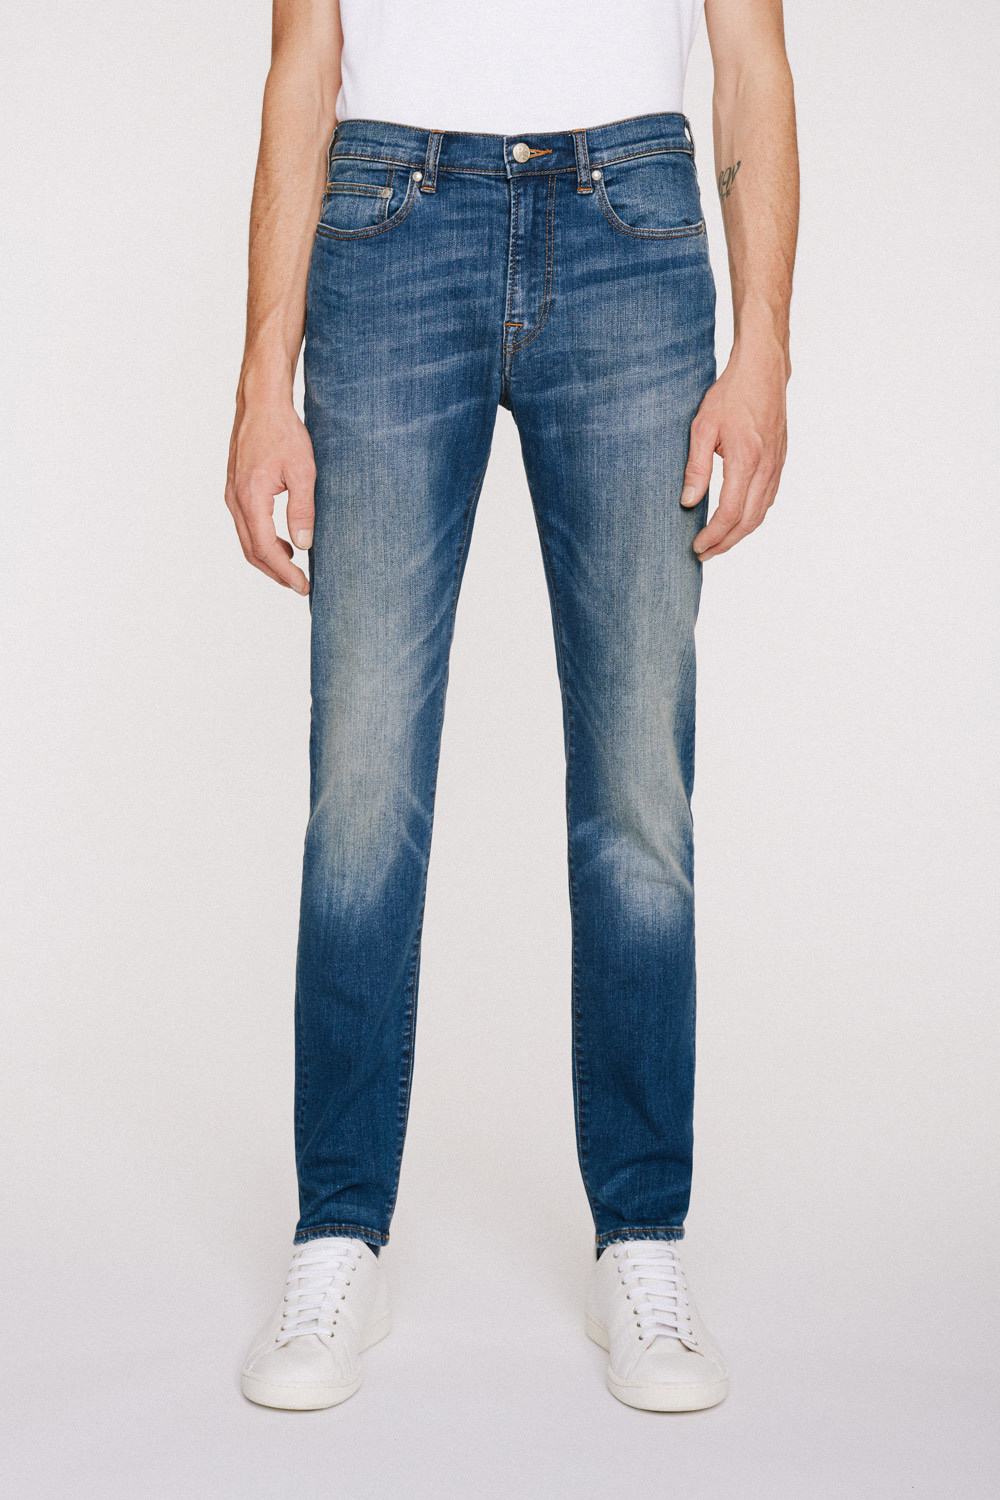 slim fit jeans - Blue Paul Smith